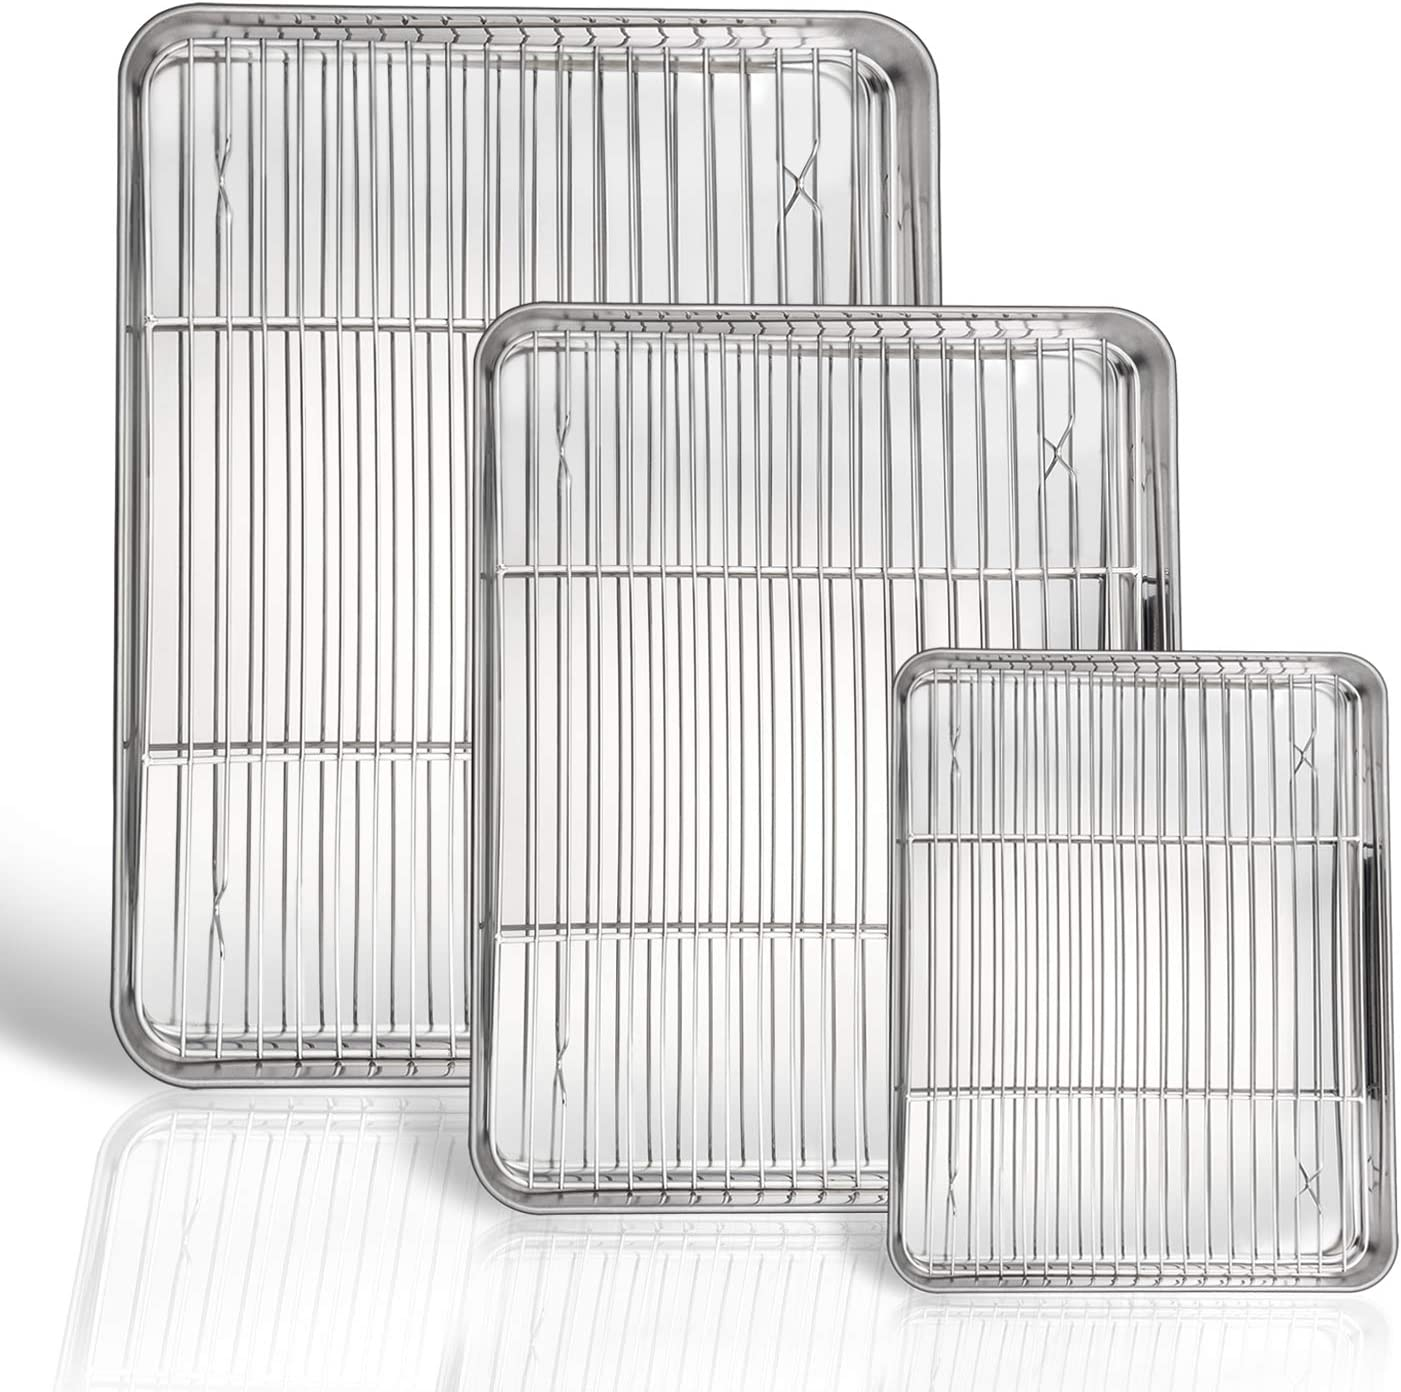 P&P CHEF Baking Sheet and Rack Set, 6 PACK (3 Sheets + 3 Racks), Stainless Steel Baking Cookie Sheets Pans with Cooling Rack for Baking and Roasting, Oven & Dishwasher Safe